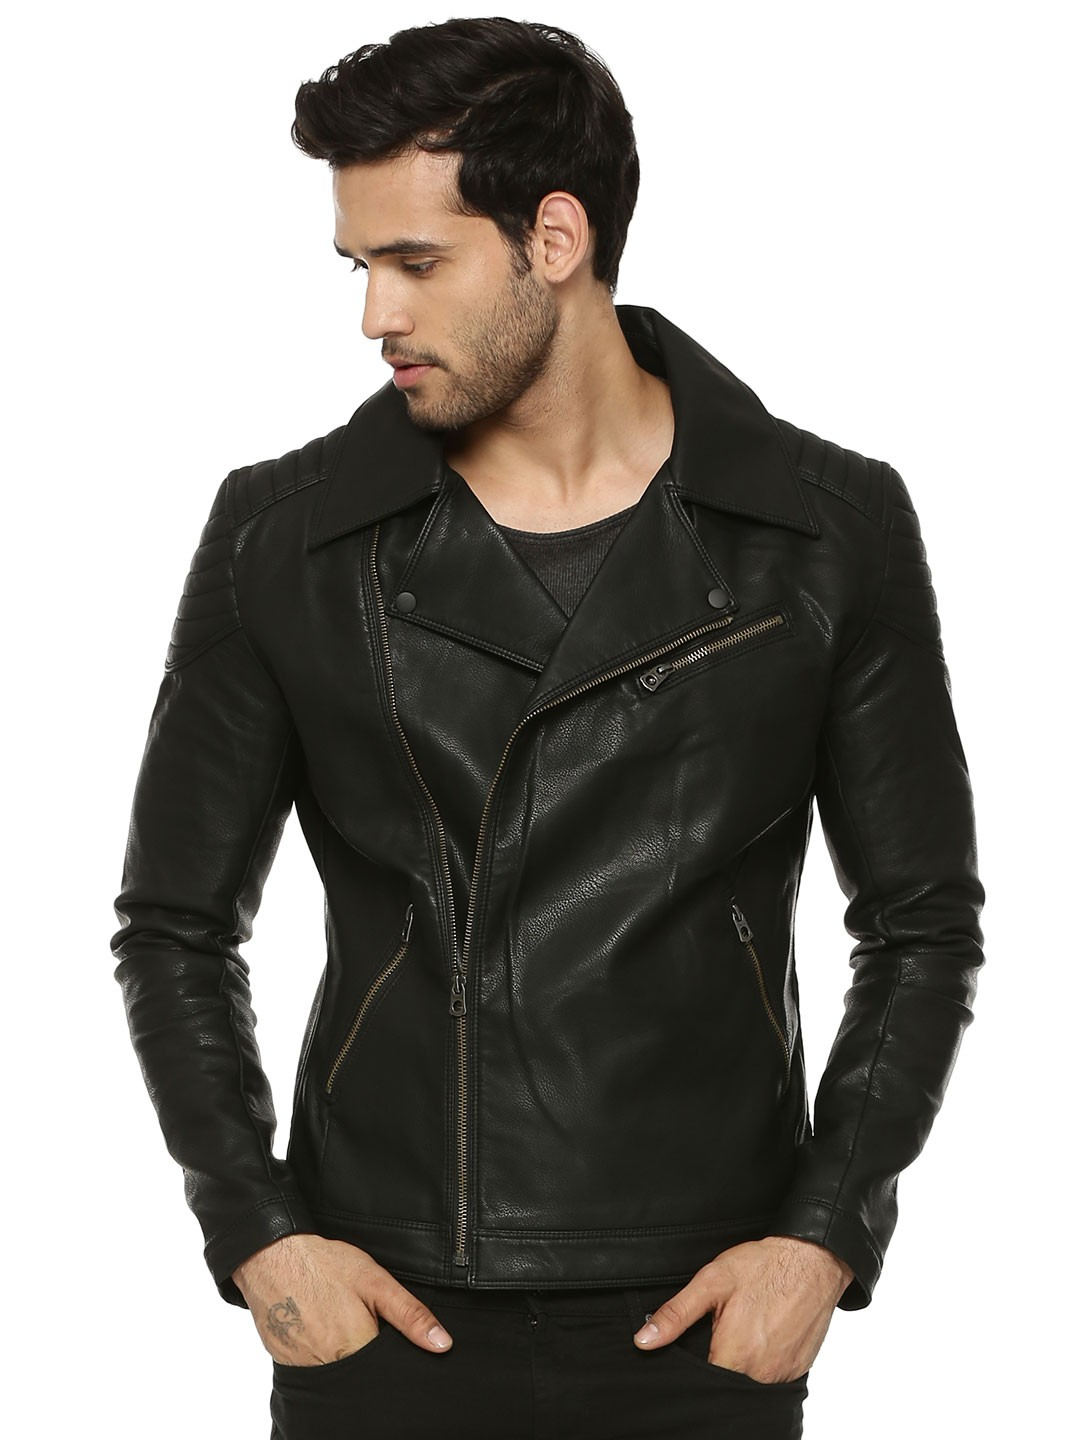 buy jack jones faux leather biker jacket for men men 39 s black jackets online in india. Black Bedroom Furniture Sets. Home Design Ideas